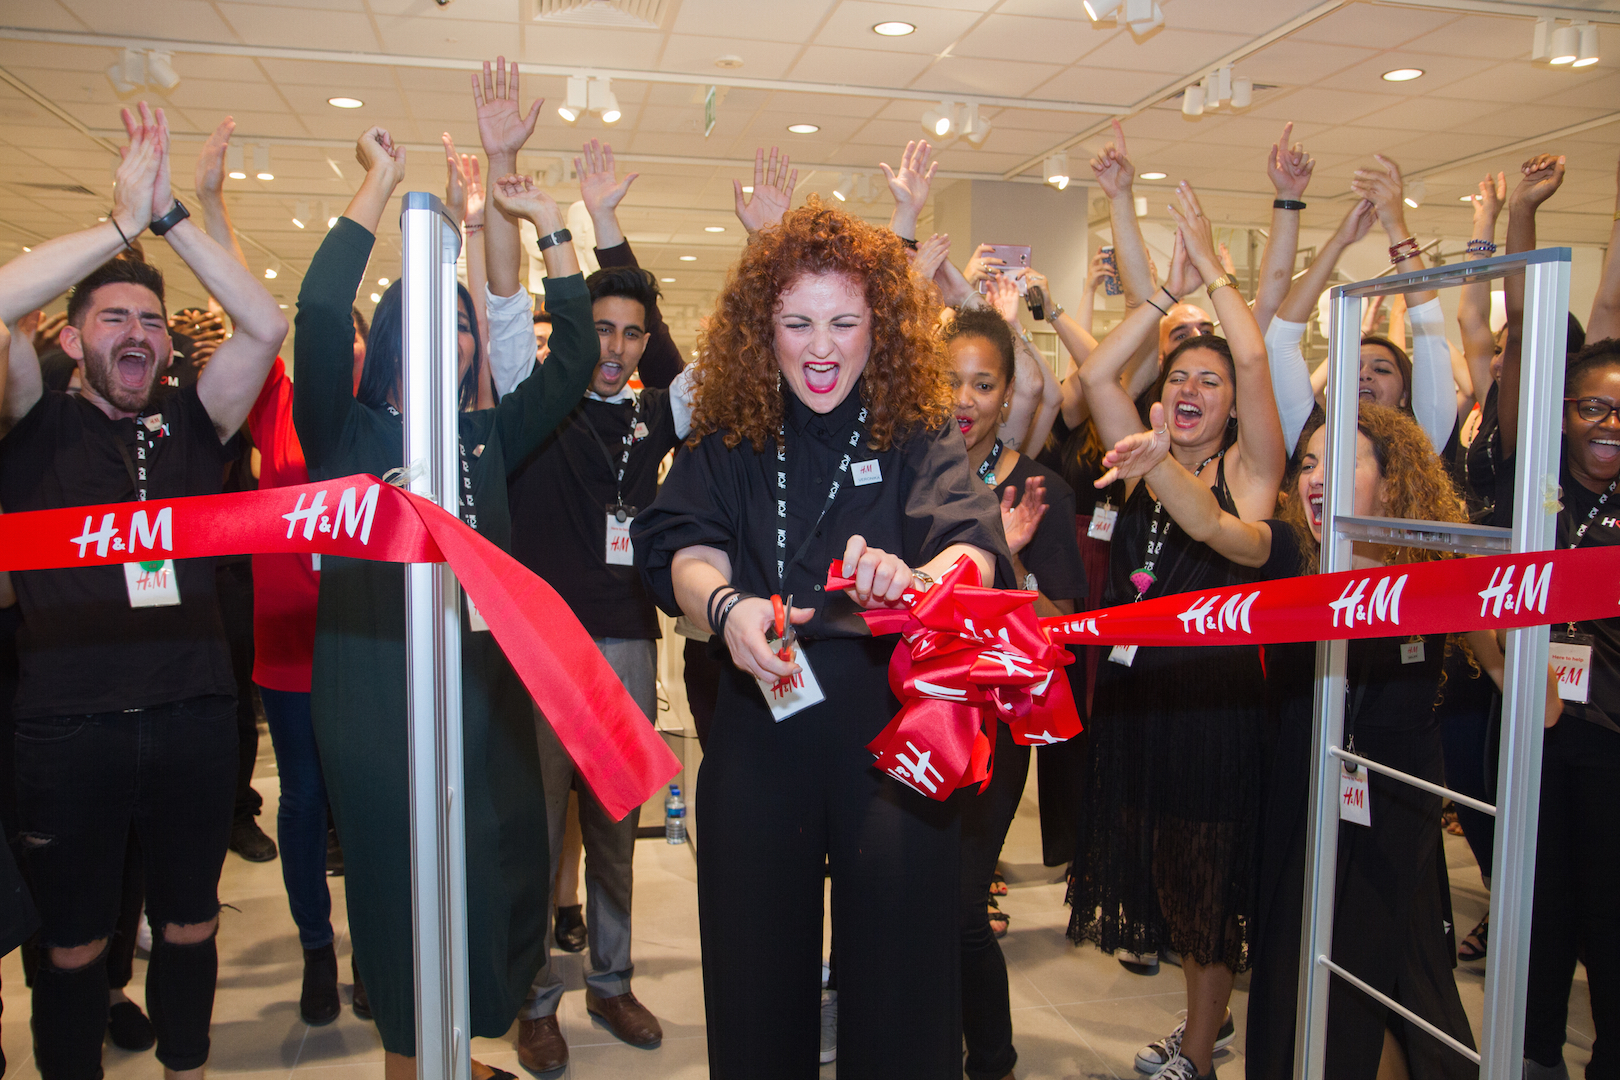 London, UK. 15th September 2016. Veronica Giannakidou, H&M Ilford manager, cuts the ribbon to official open the new store. Ilford residents and visitors queue up as a new H&M store opens its doors in Exchange Mall Ilford in Essex. Customers lined-up before 11am to receive a 25% discount wristband and enjoy music from an in-house DJ as they perused around the new store. © Elsie Kibue